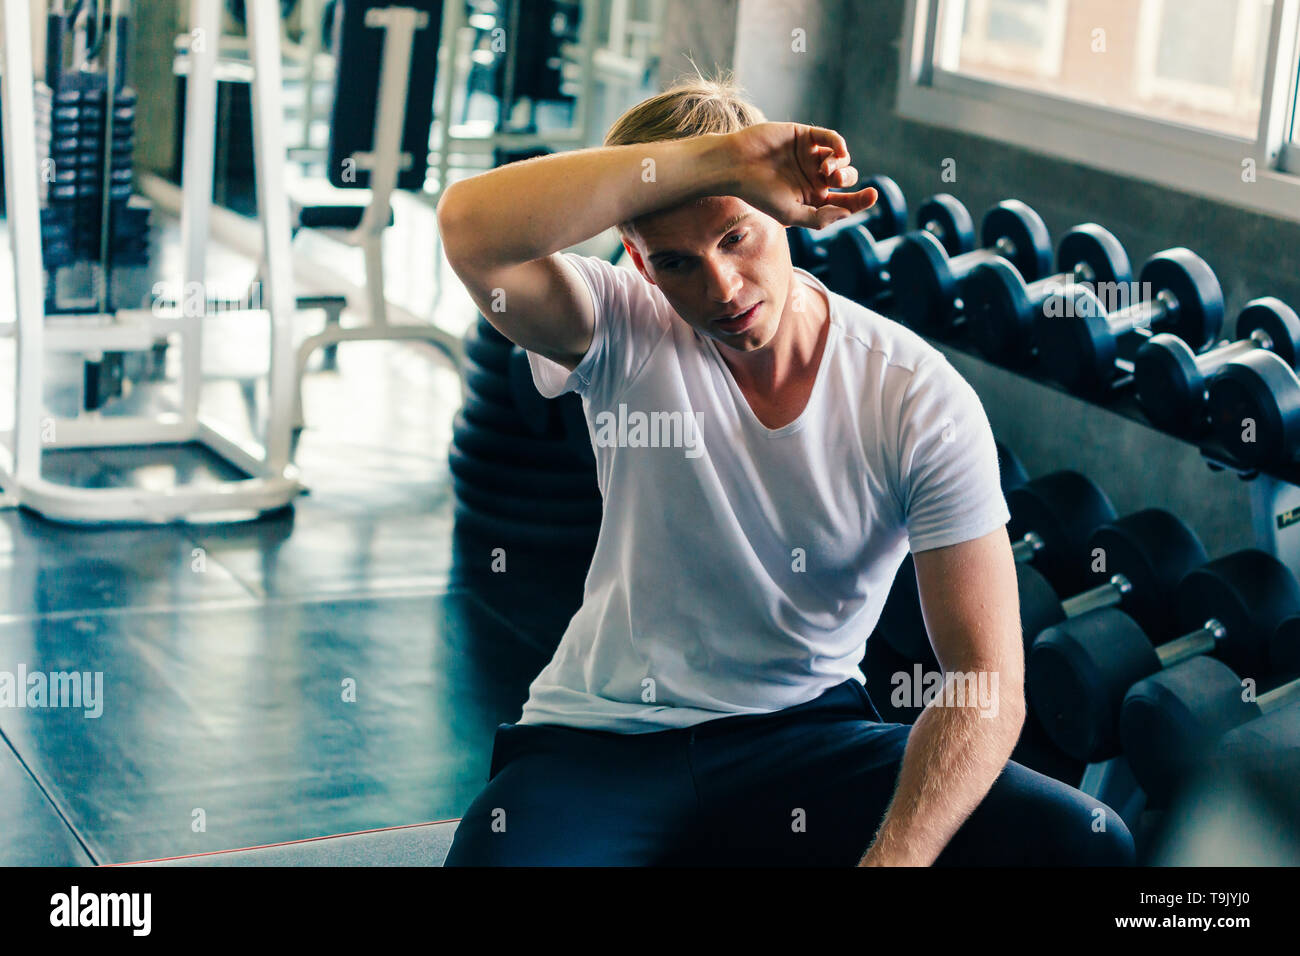 Young man wiping sweat off forehead with dumbbells and fitness equipment inside gym. He is tired and exhausted from weightlifting and weight training. - Stock Image